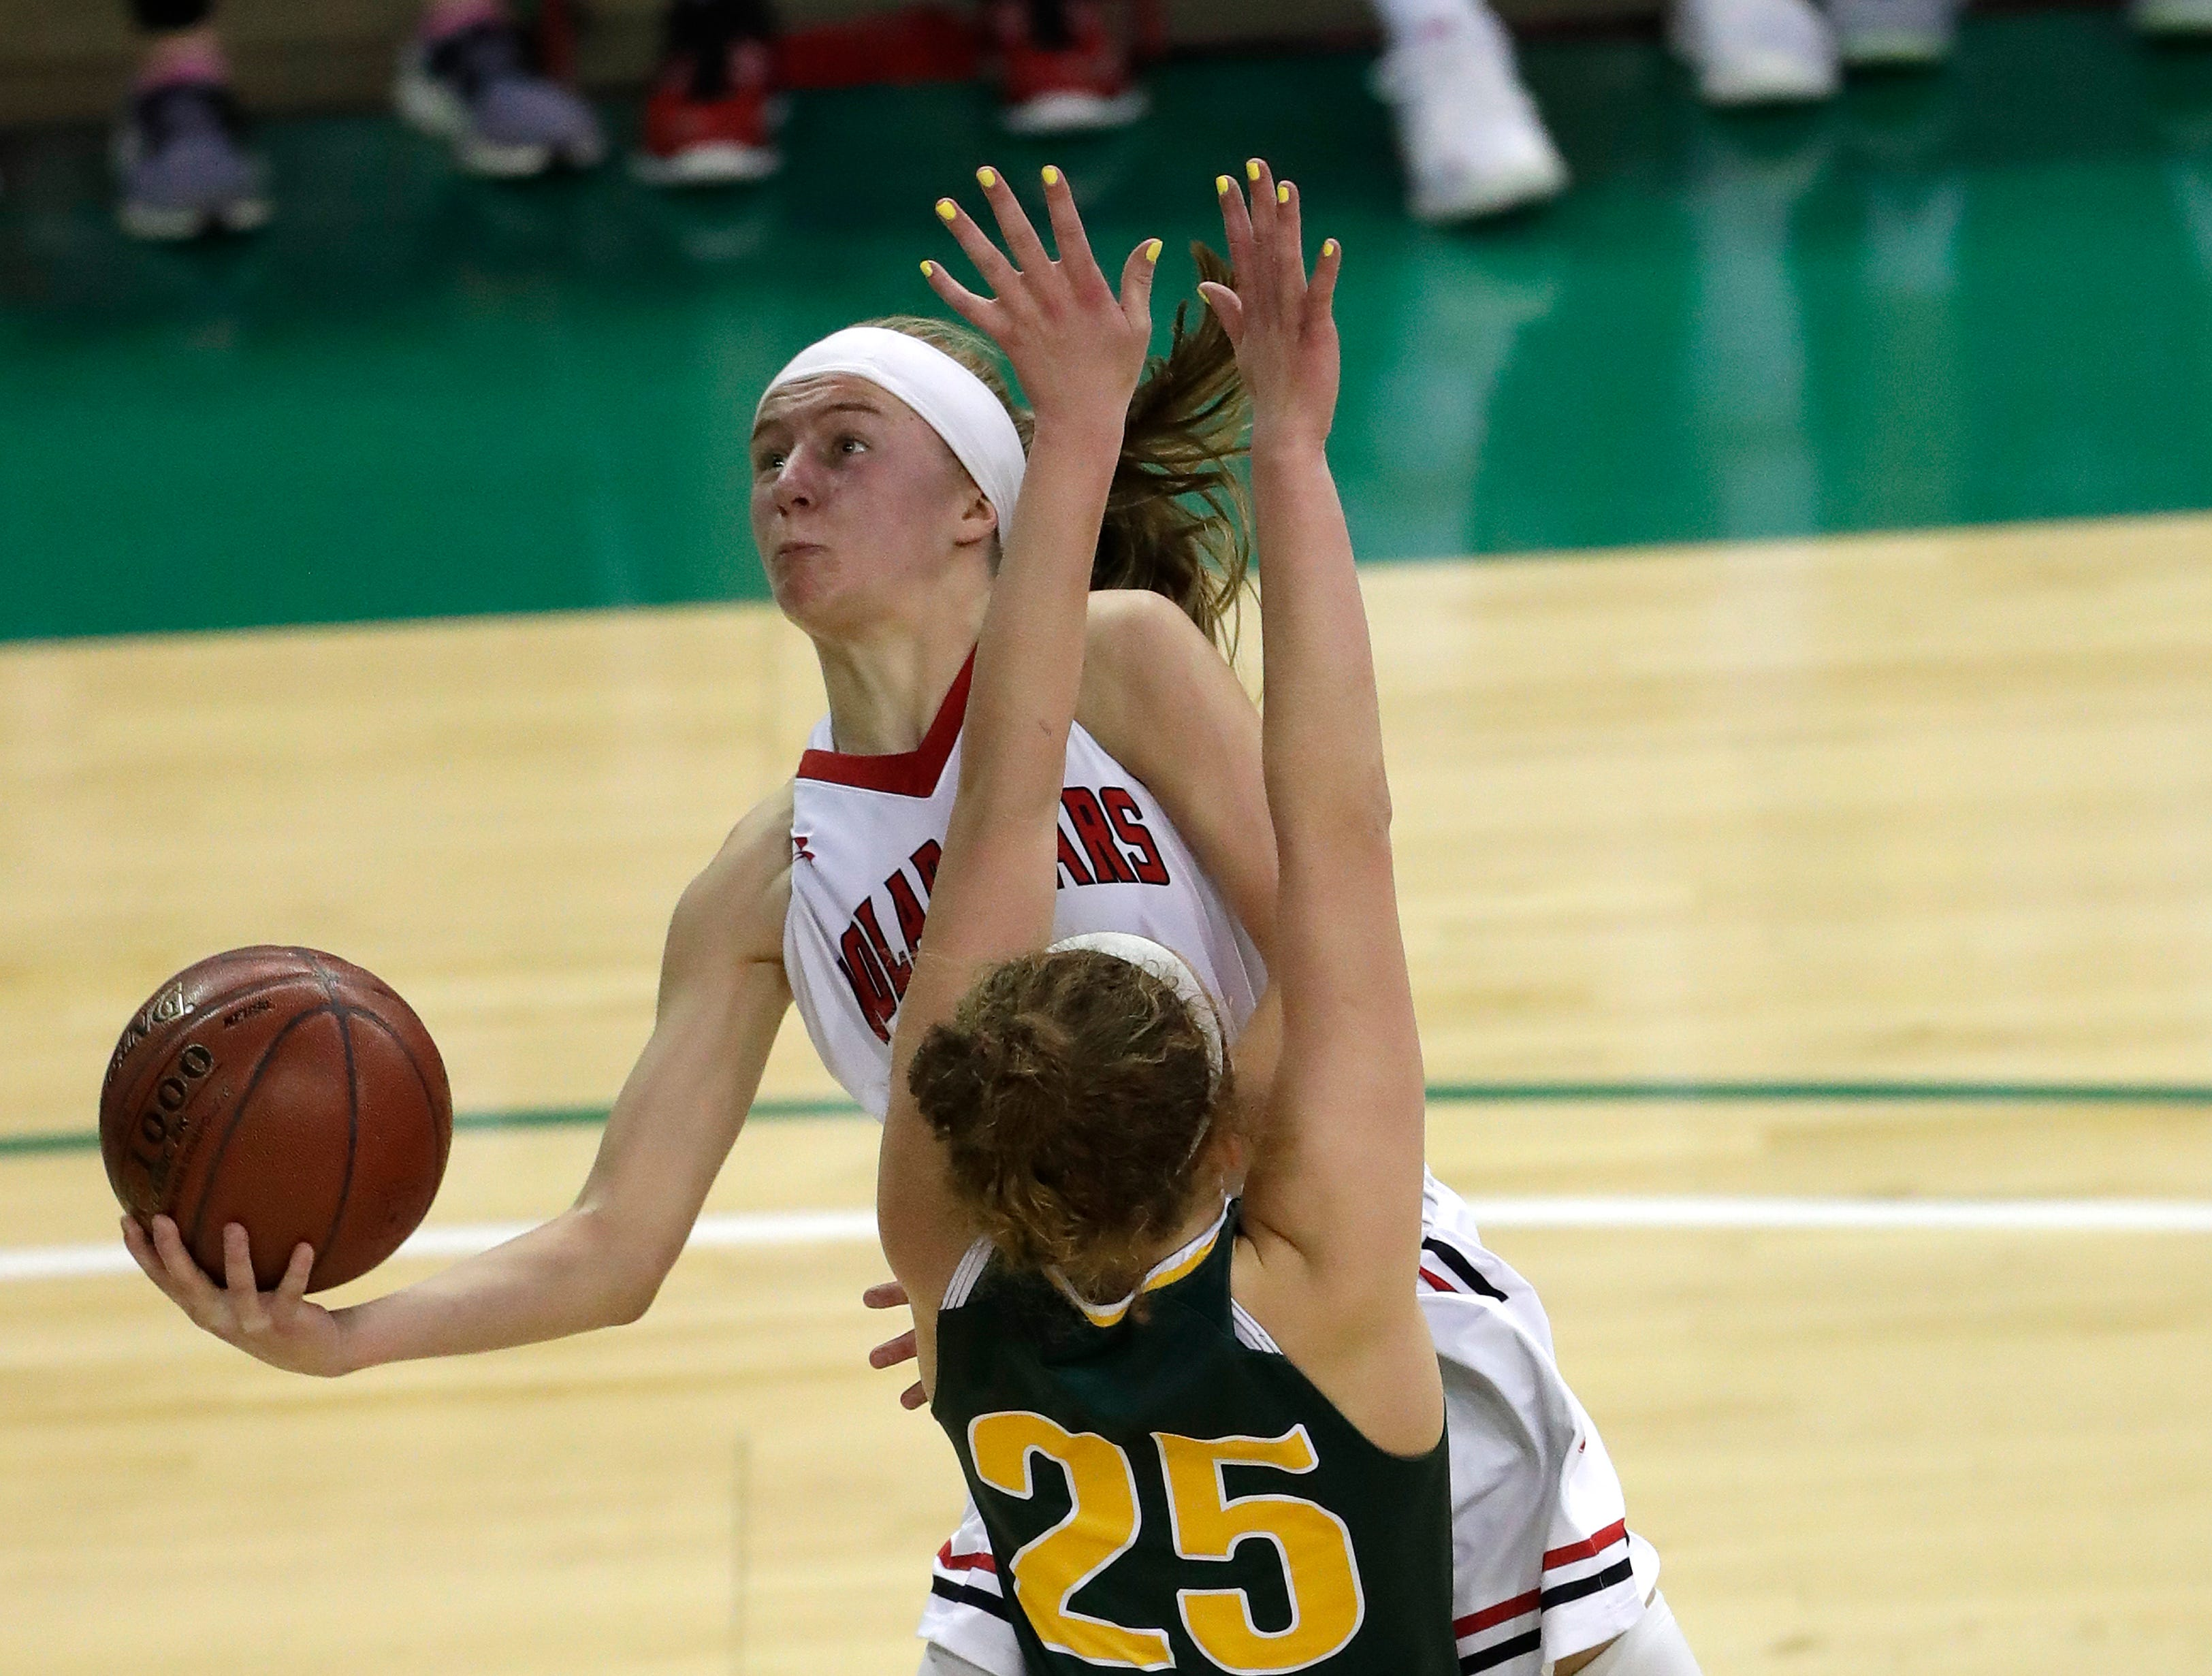 Hortonville's Kammy Peppler (23) puts up a shot against Beaver Dam's Matyson Wilke (25) during their Division 2 semifinal game at the WIAA girls state basketball tournament Friday, March 8, 2019, at the Resch Center in Ashwaubenon, Wis. Dan Powers/USA TODAY NETWORK-Wisconsin